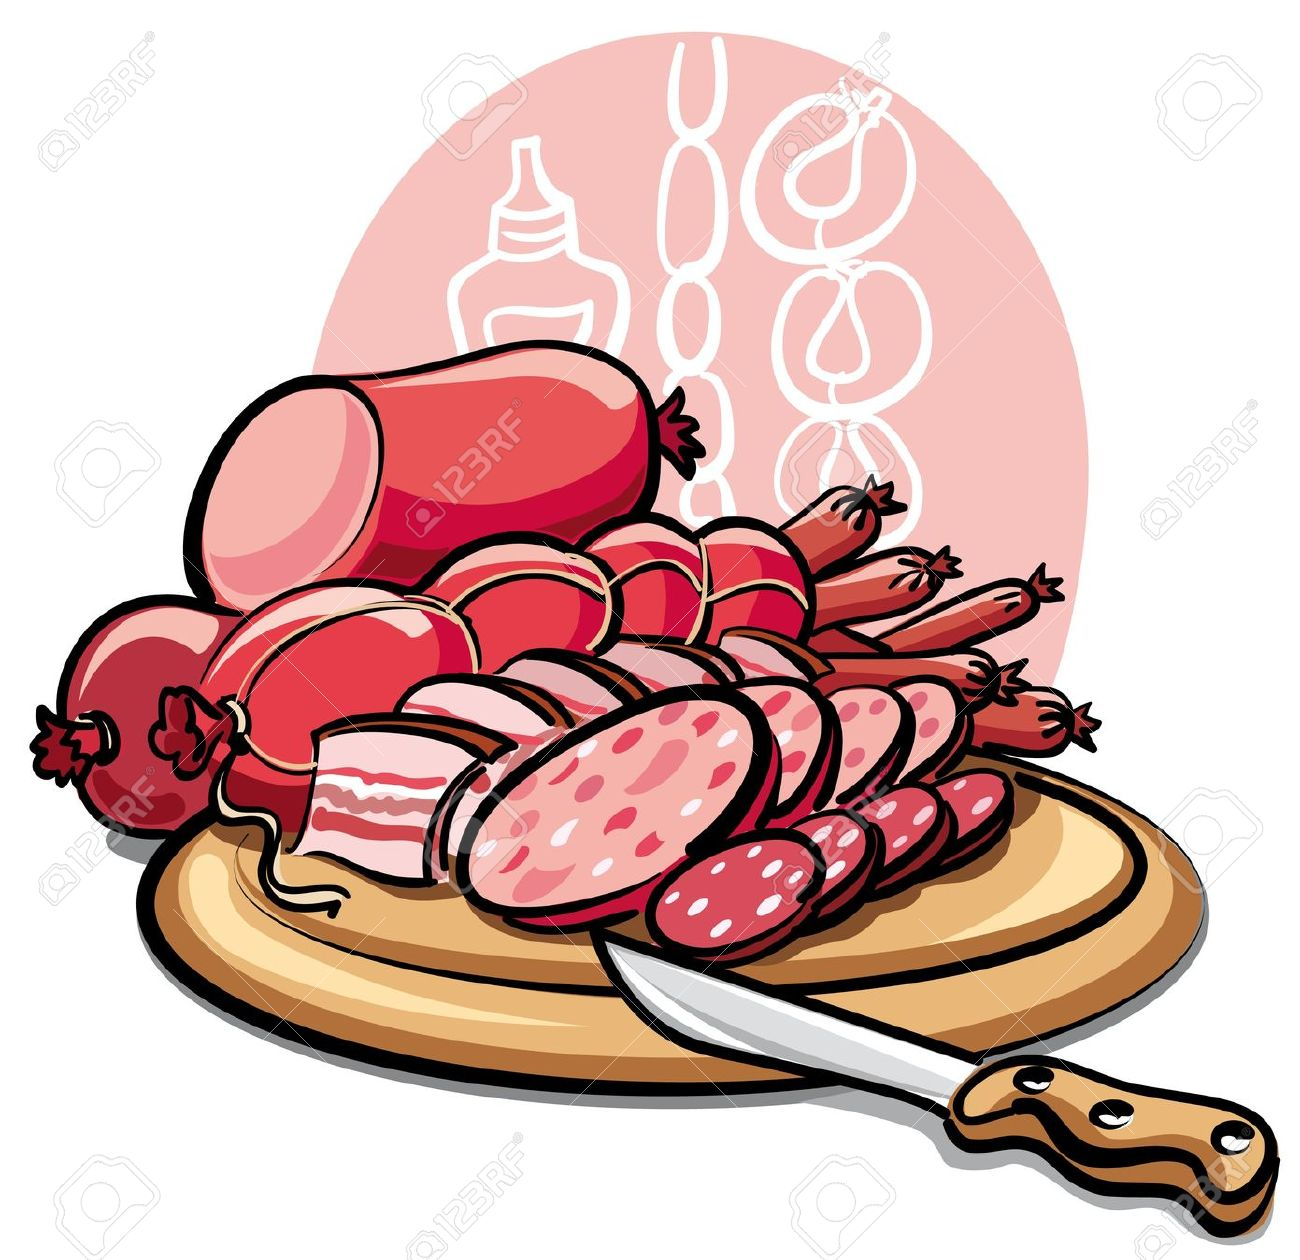 Sausages And Ham Royalty Free Cliparts, Vectors, And Stock.